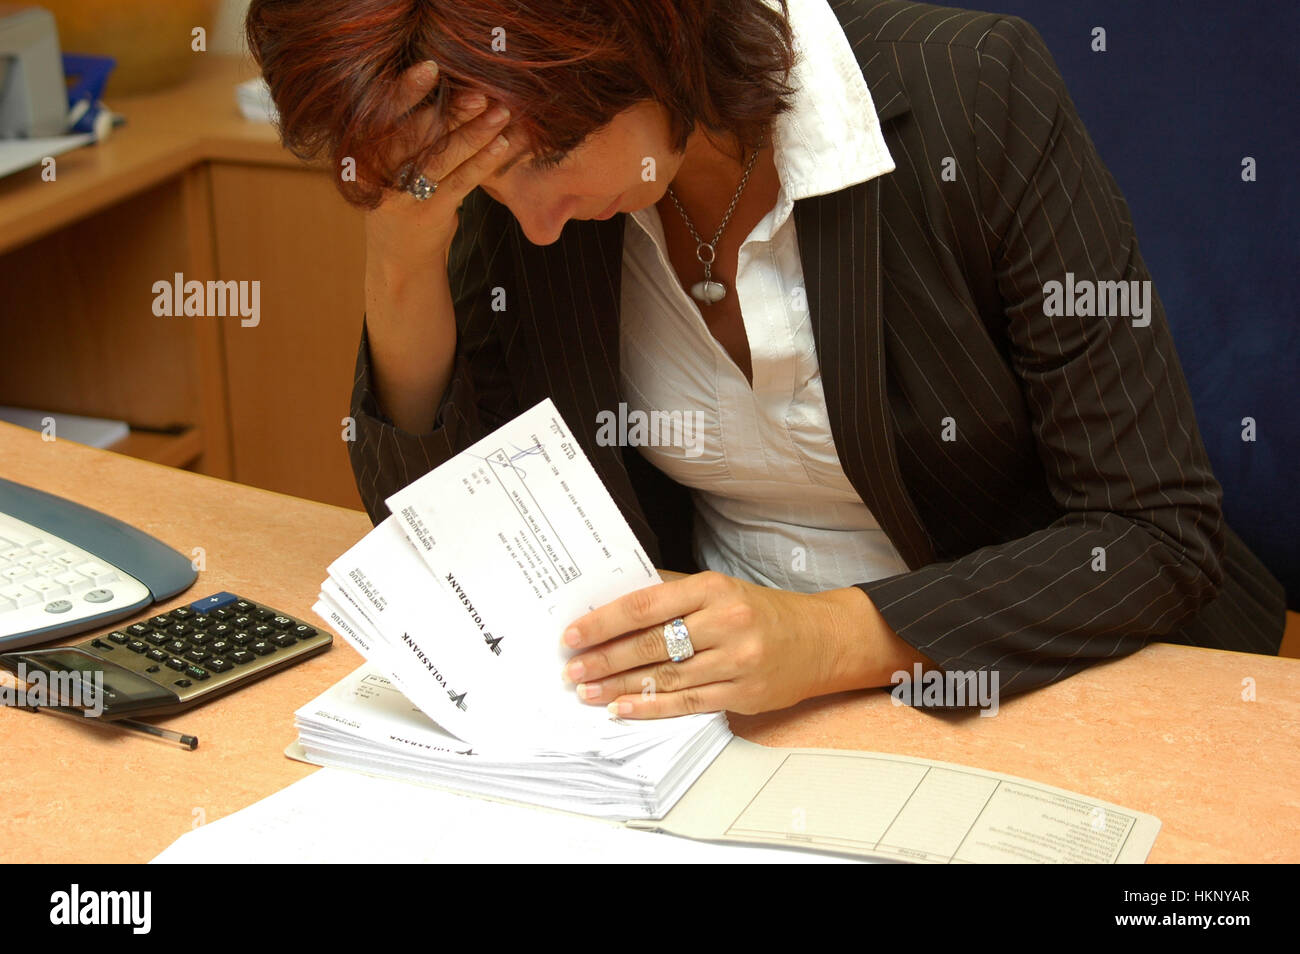 Young woman with money troubles - Stock Image